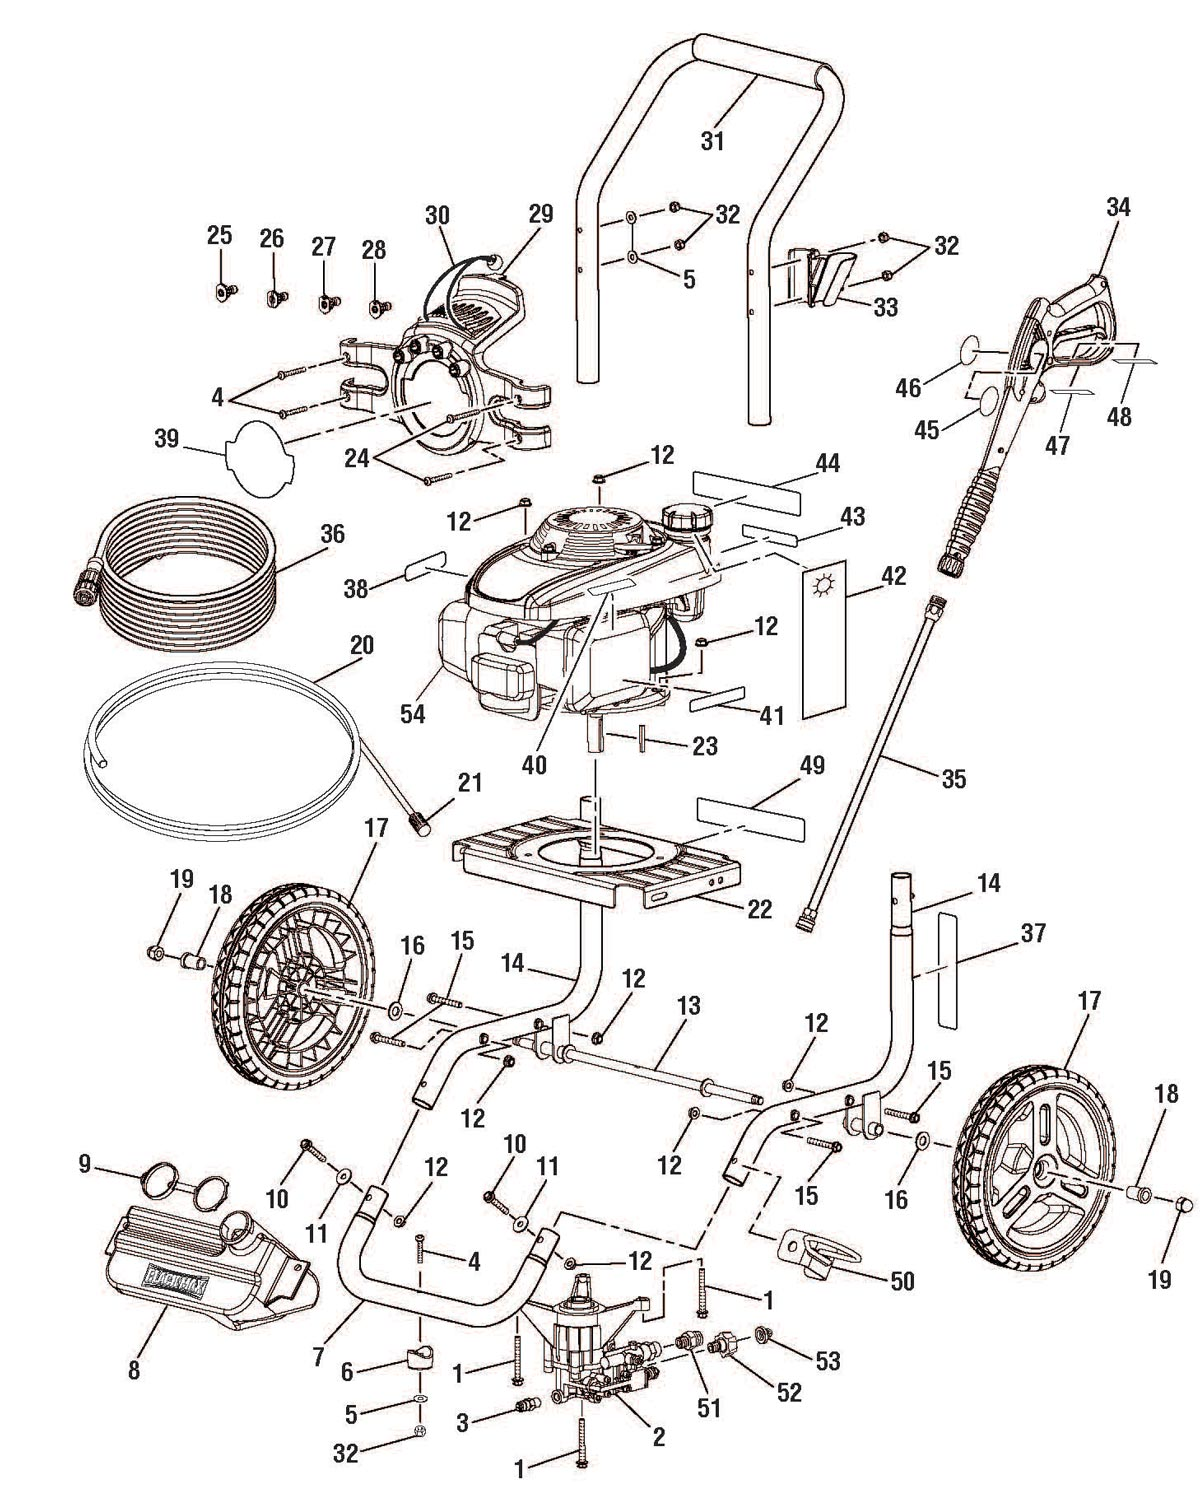 Coleman Black Max Air Compressor Manualcoleman Motor Wiring Diagram And Parts List For Aircompressorparts Powermate Catalog Manual